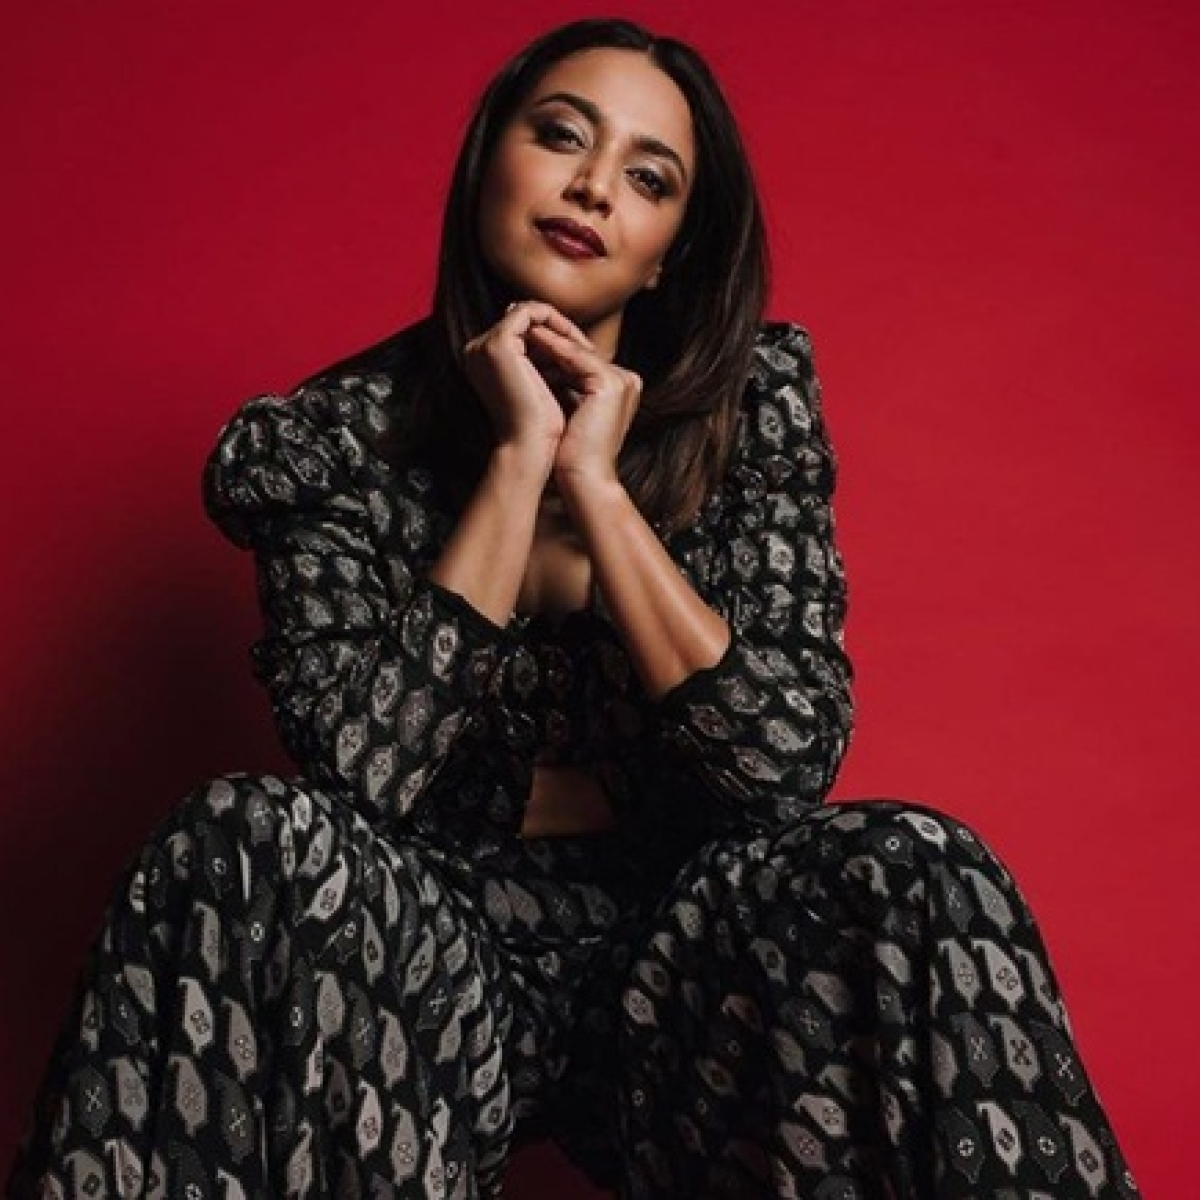 'Sit down uncle': Swara Bhasker chides BJP leader for not knowing the word 'hangry'